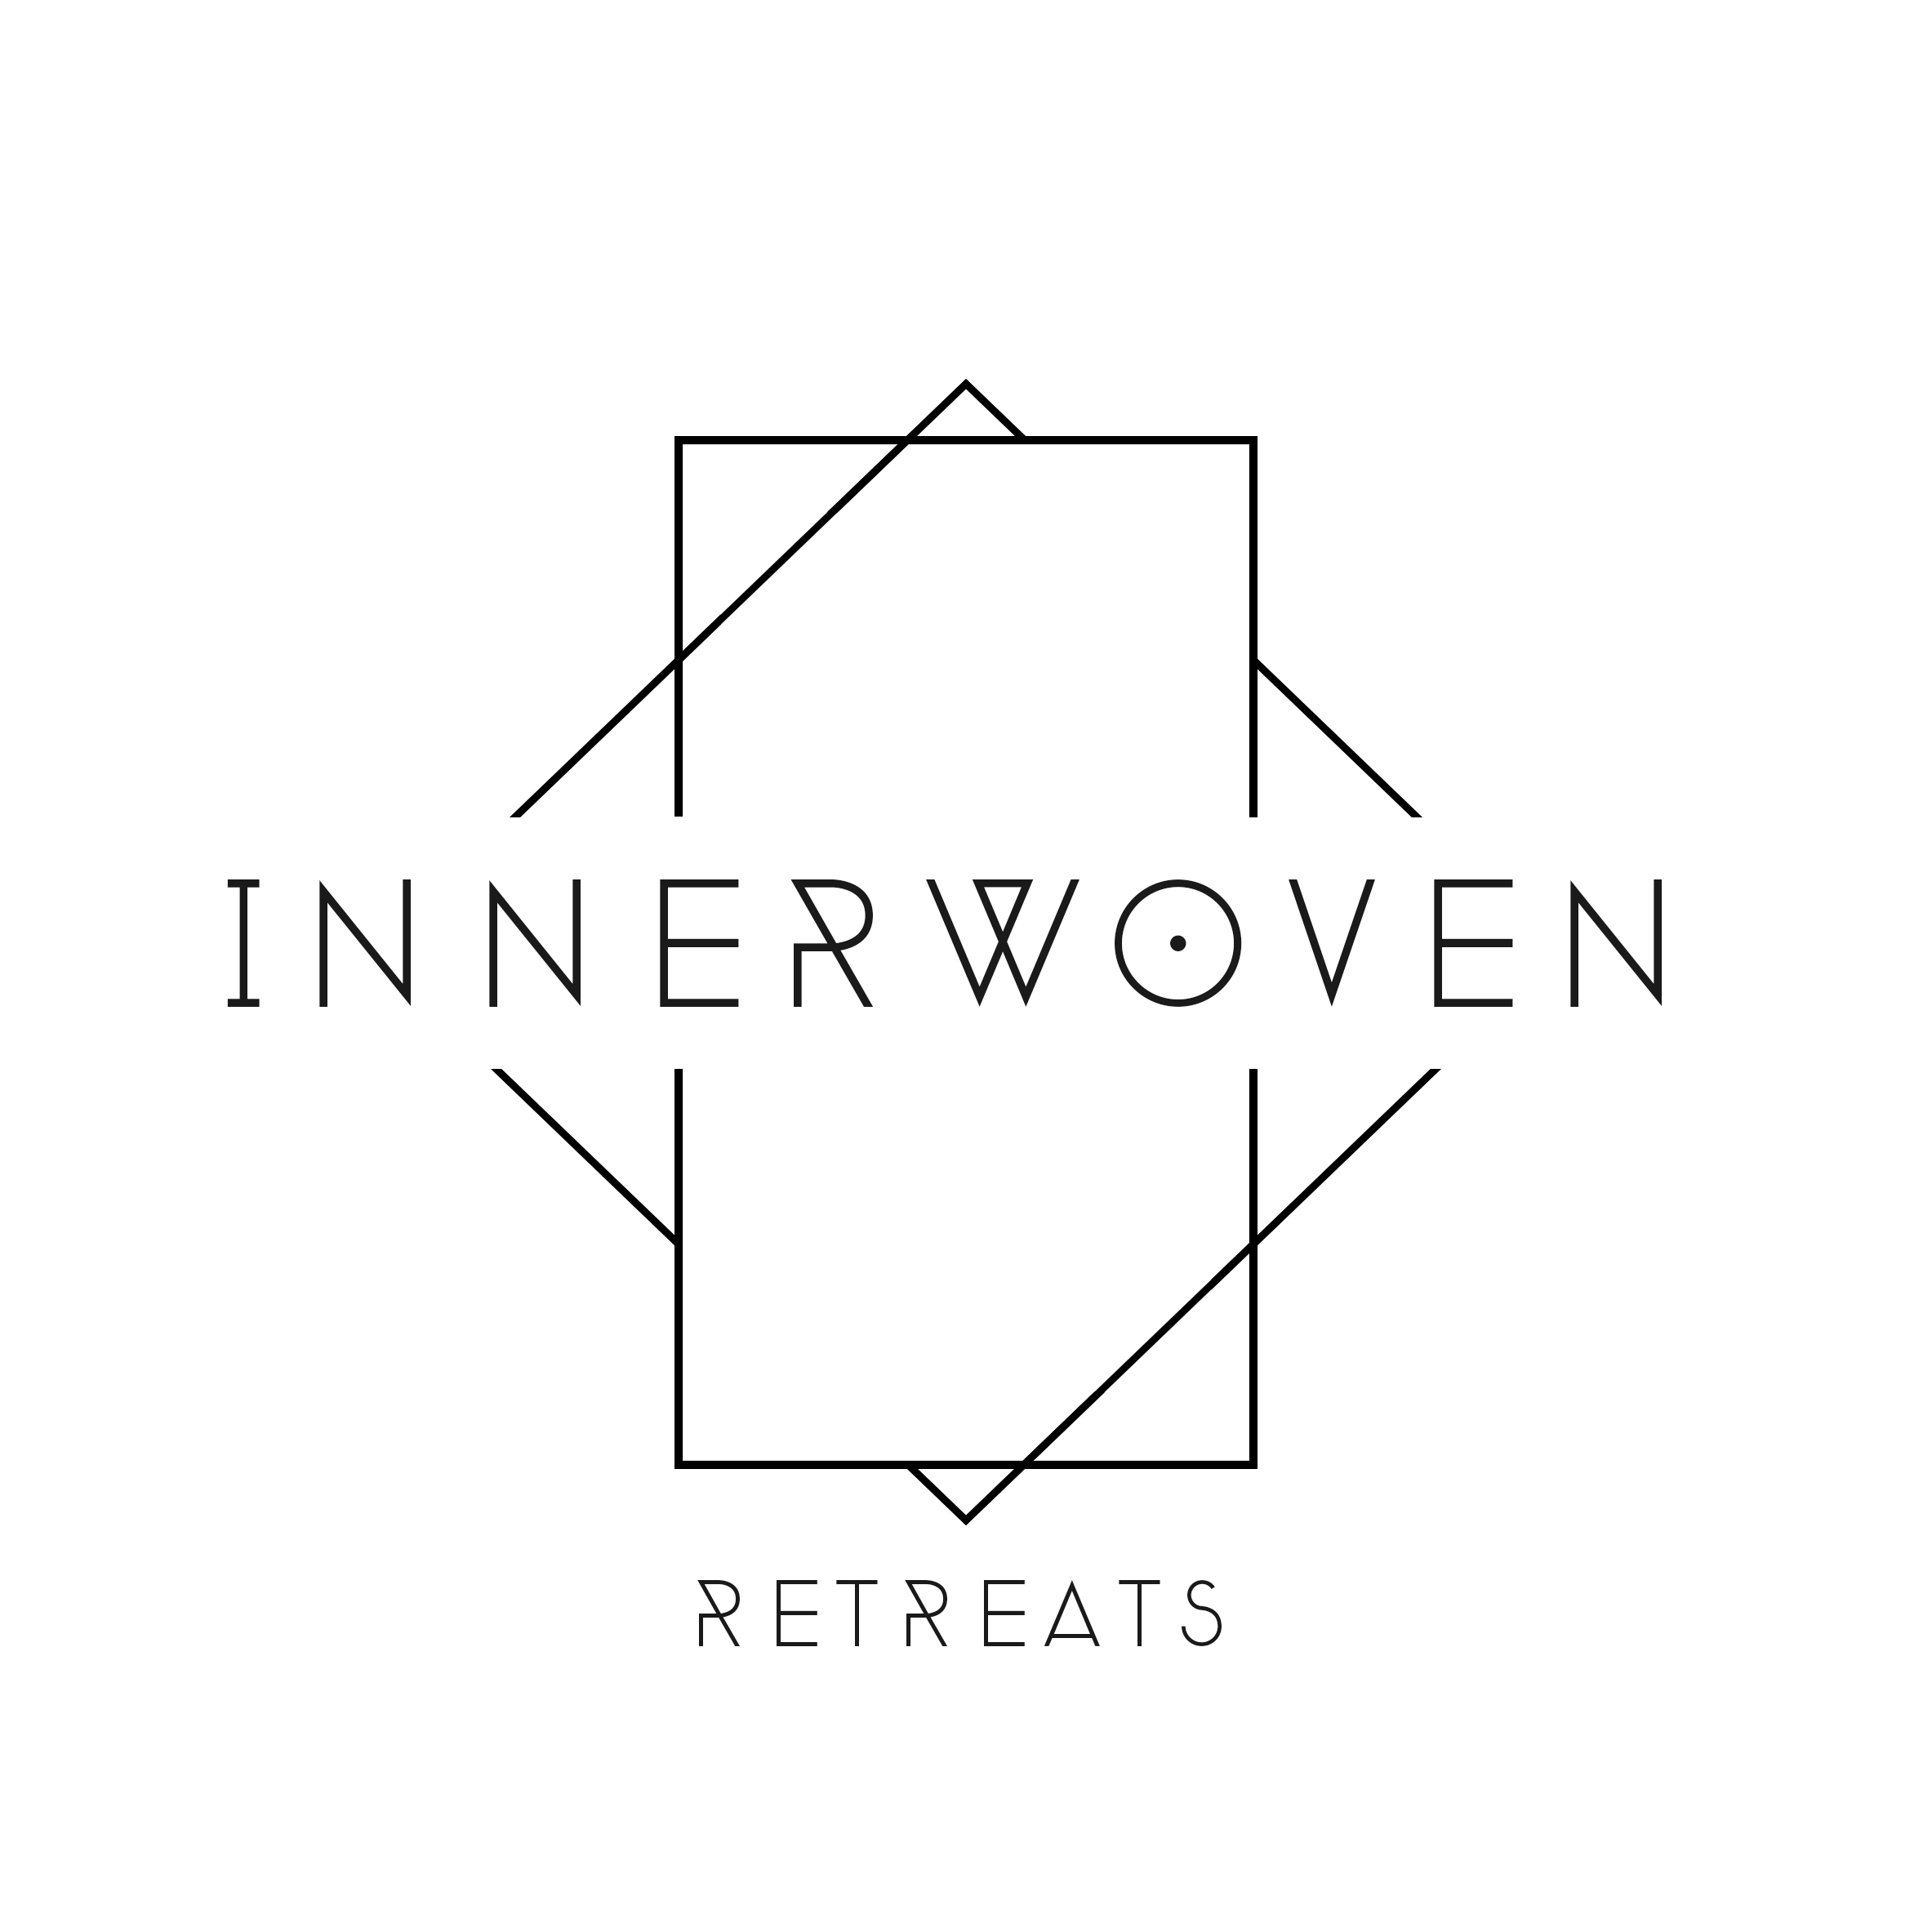 Our seasonal retreat is just around the corner & it's had a face lift - New great name, new great location, same great experience